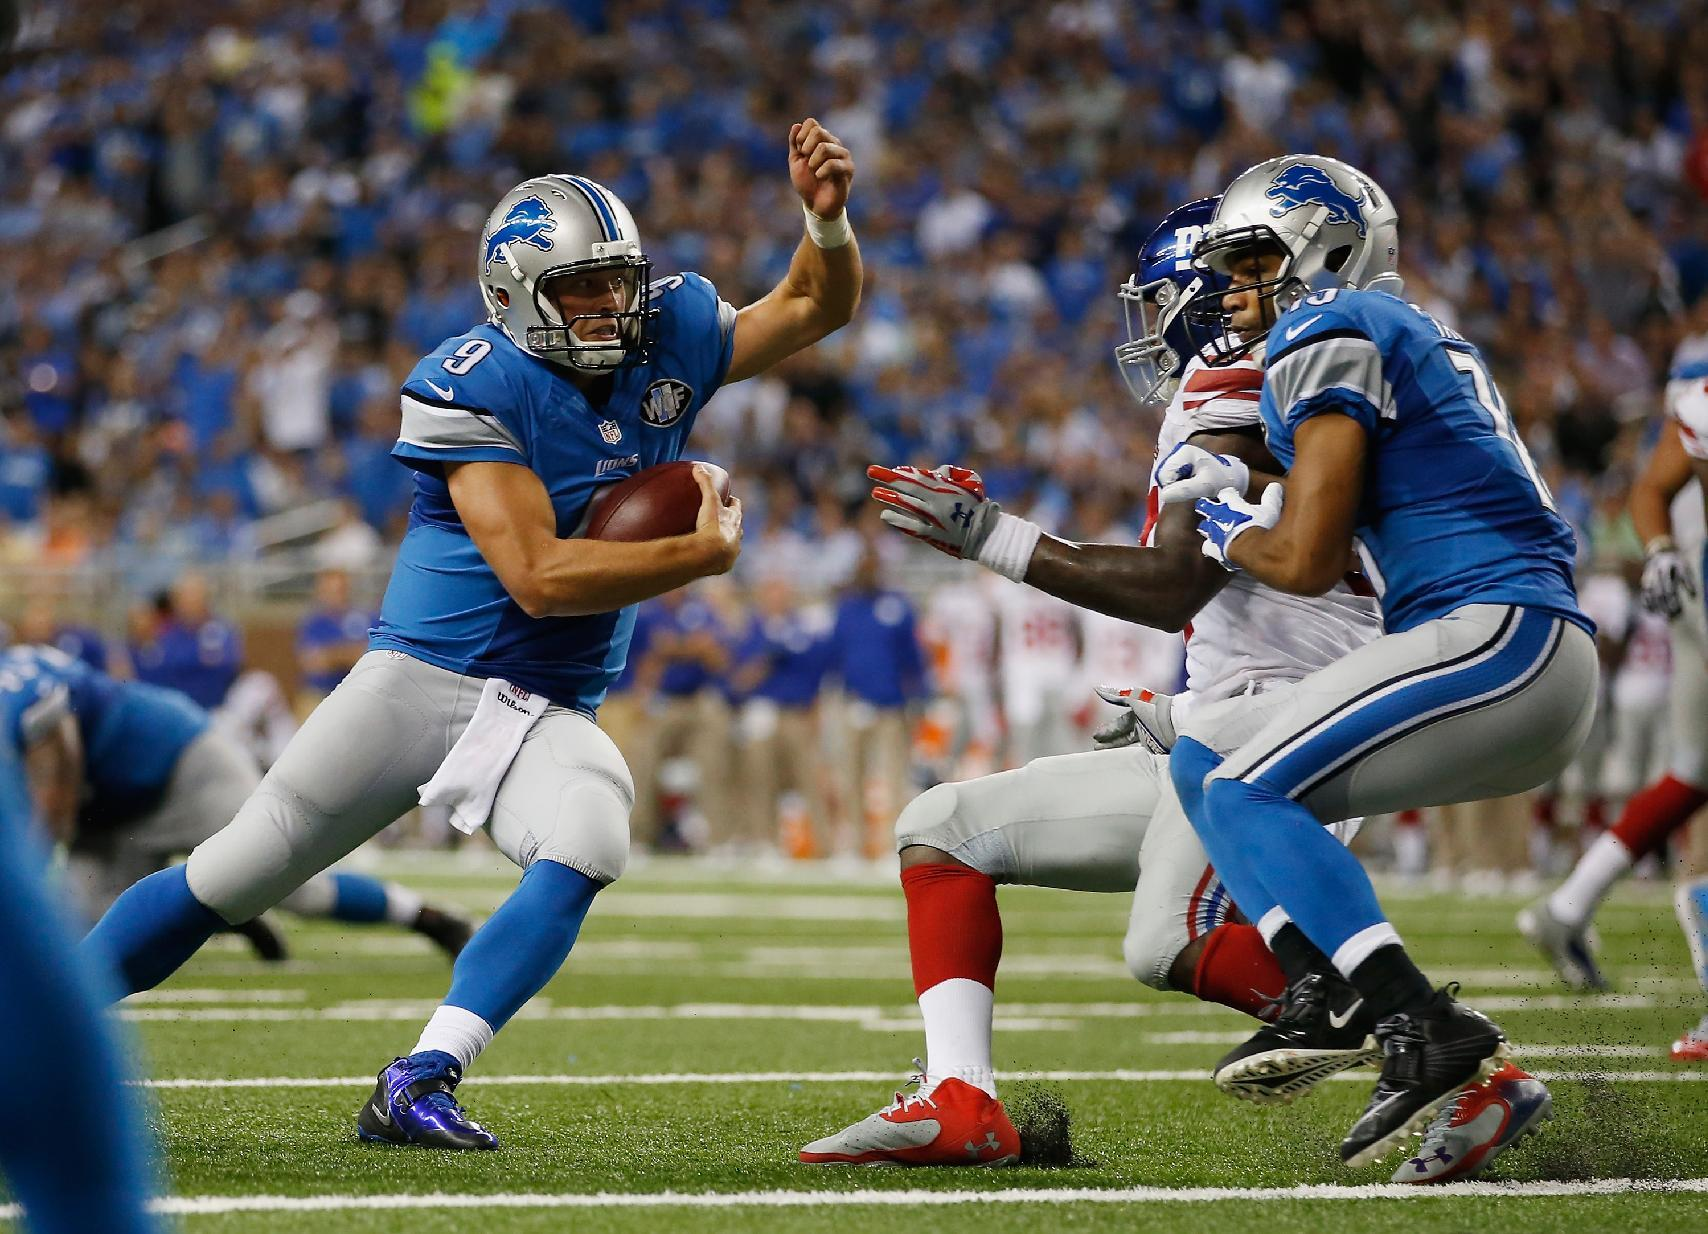 Lions Rout Giants Cardinals Edge Chargers In Nfl Openers